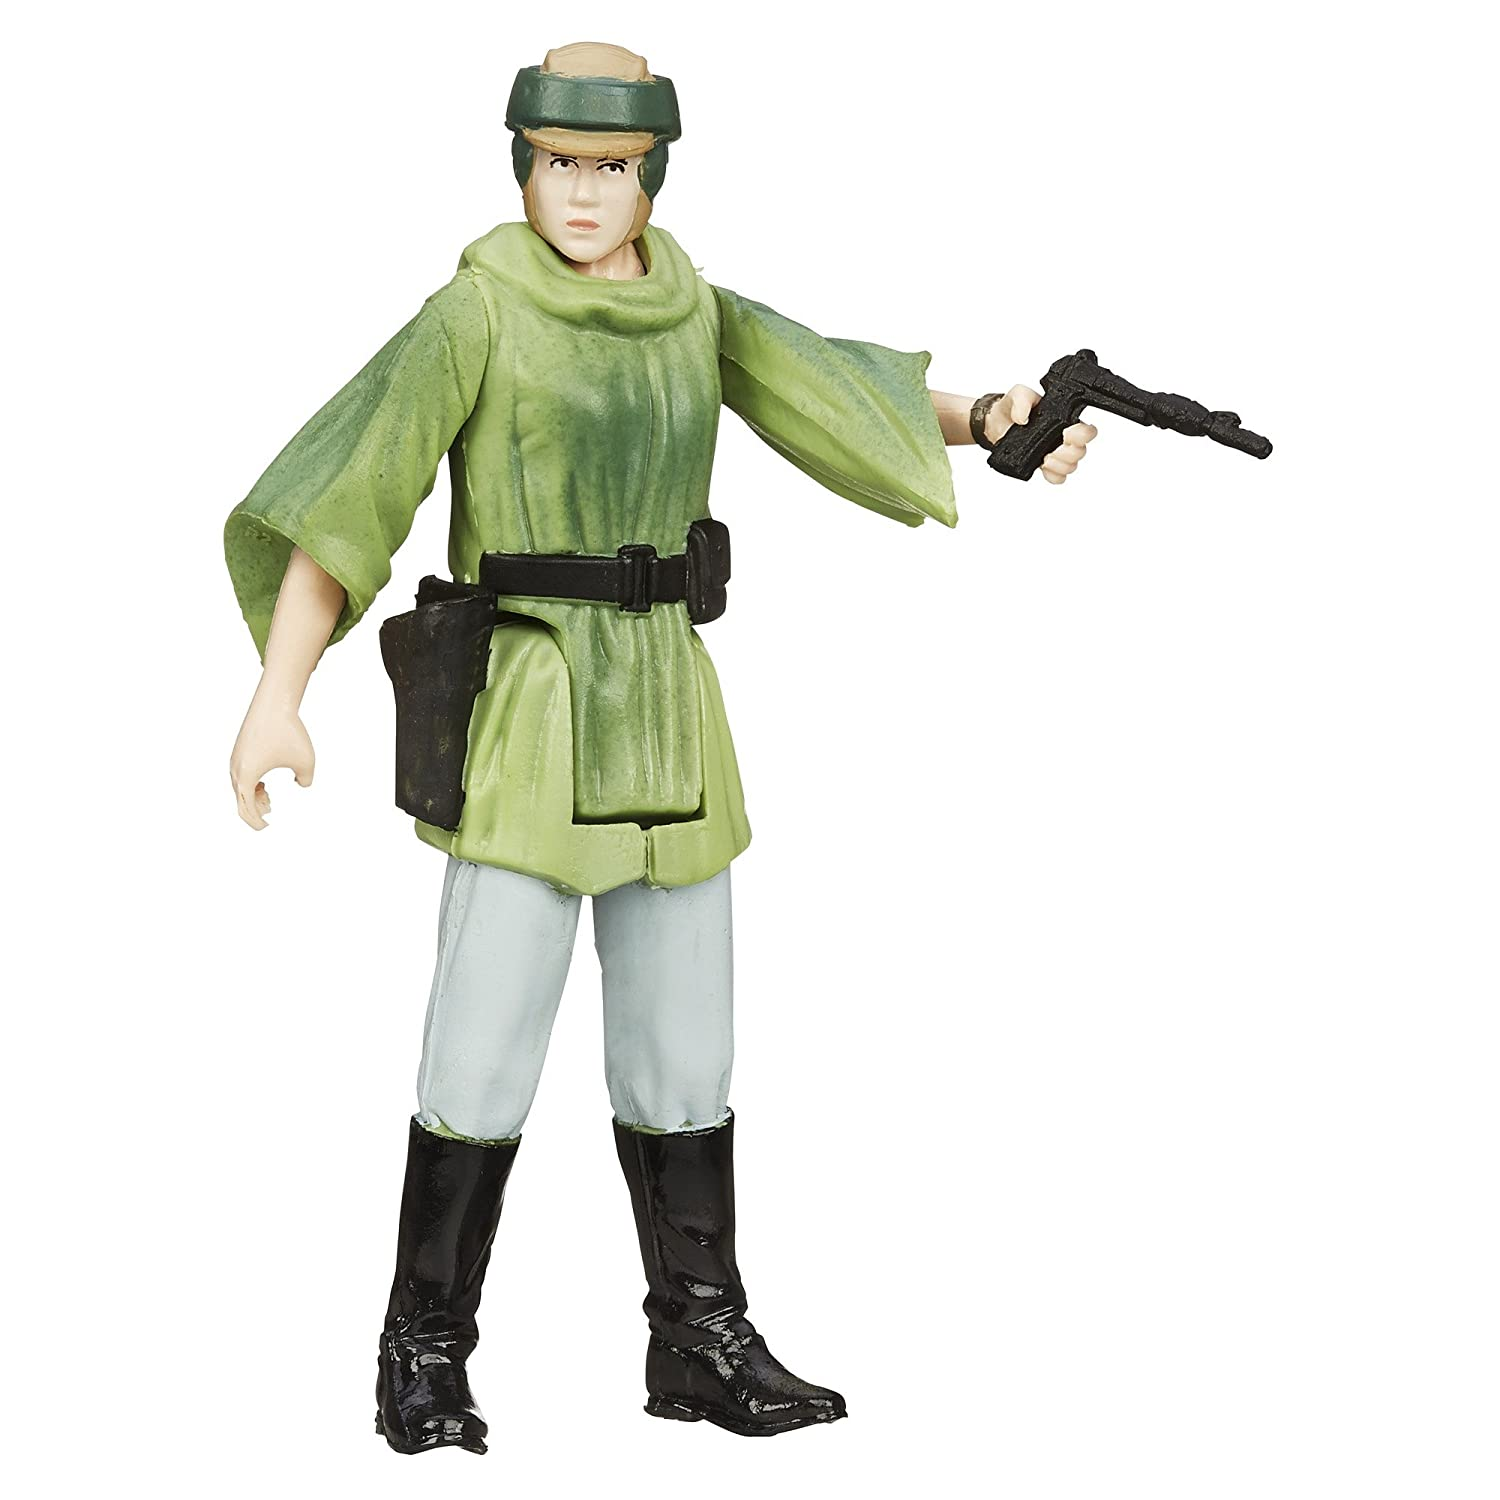 Star Wars Saga Legends Princess Leia Endor Figure Hasbro B1115AS0